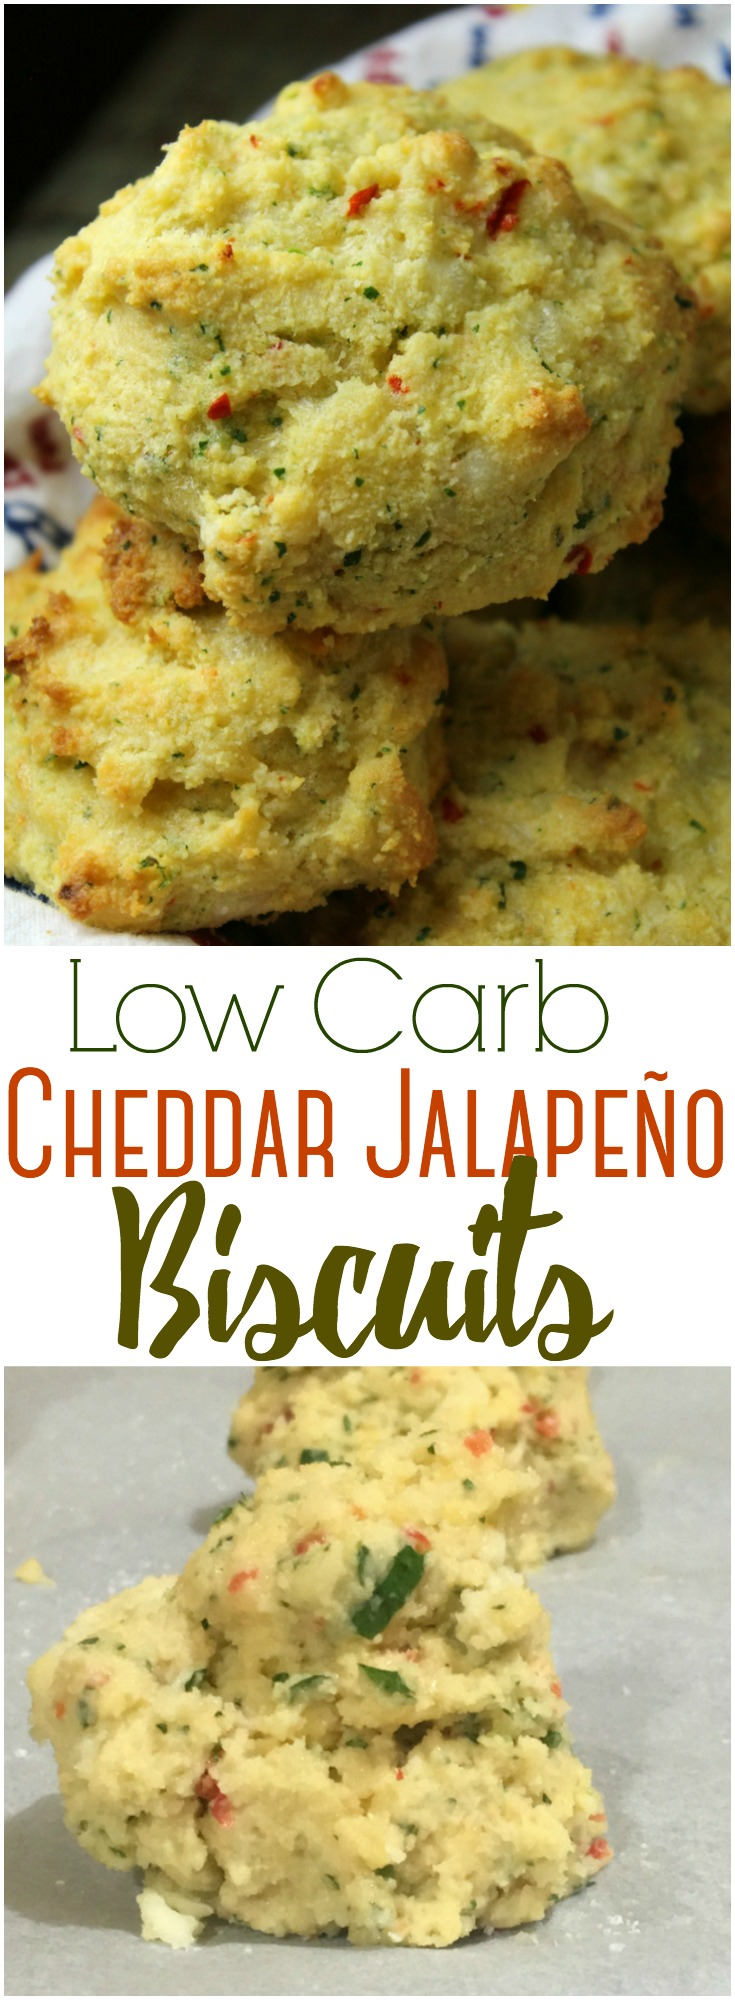 A cheesy cheddar and jalapeño biscuit that's low-carb, Keto-friendly, and SO good you will never go back to regular  biscuits!  #lowcarb #Keto #almondflour #cheese #biscuits #healthyrecipes, #grainfree